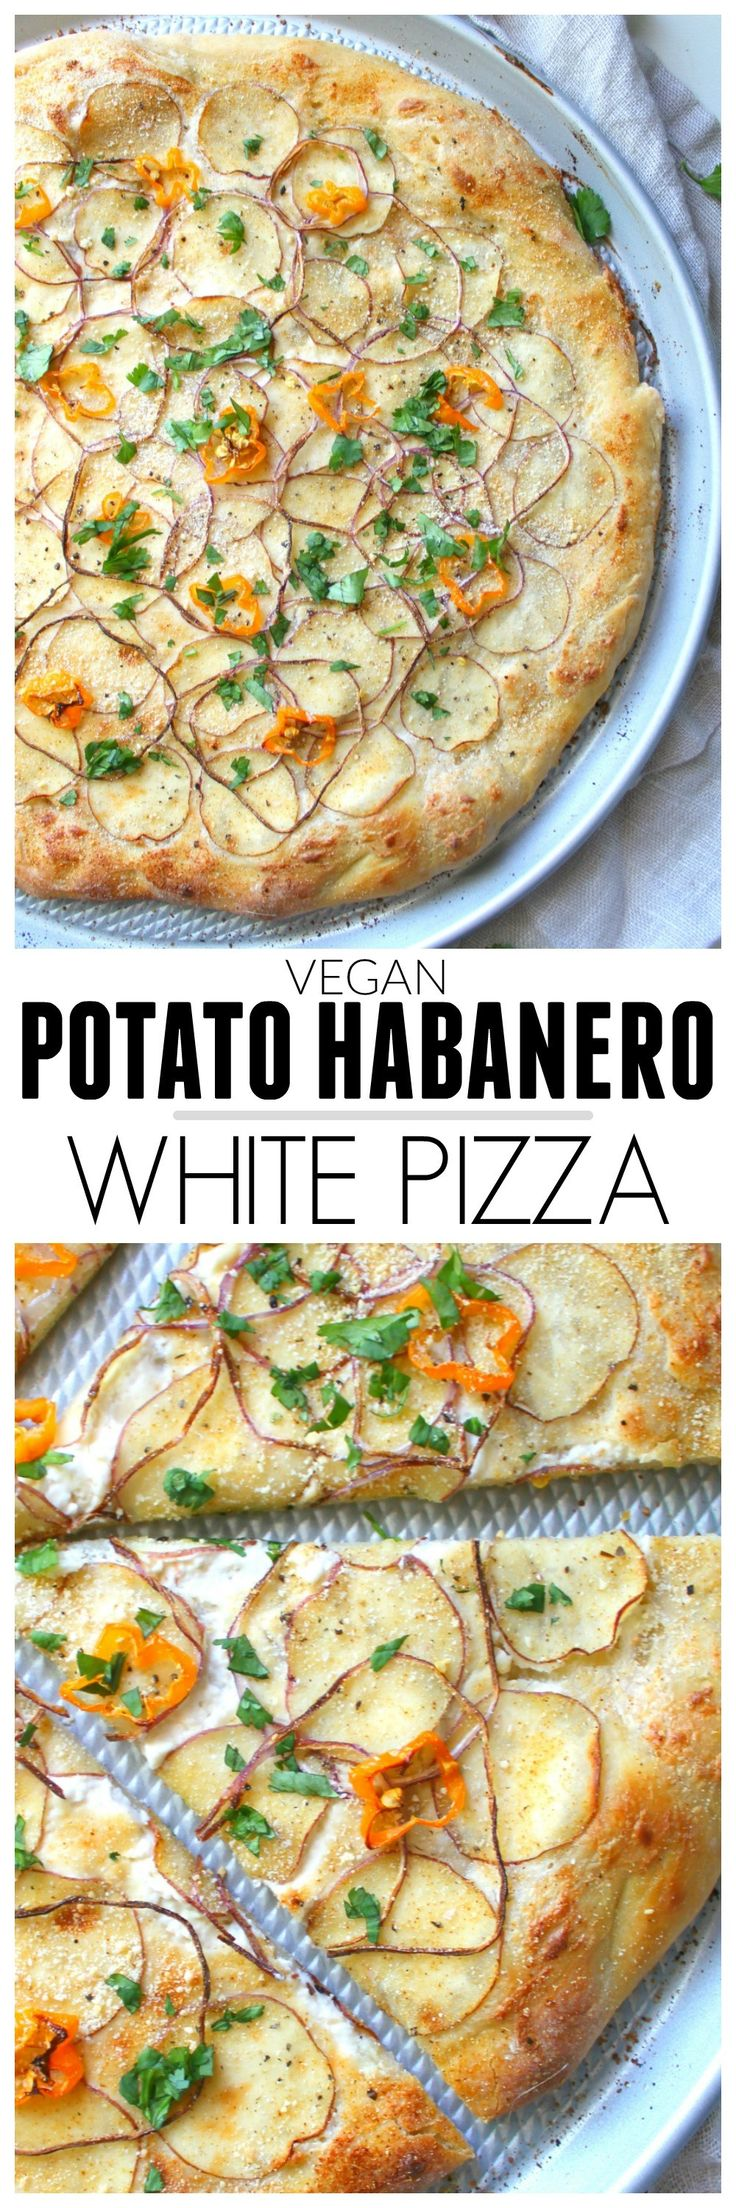 Vegan Potato Habanero White Pizza | ThisSavoryVegan.com